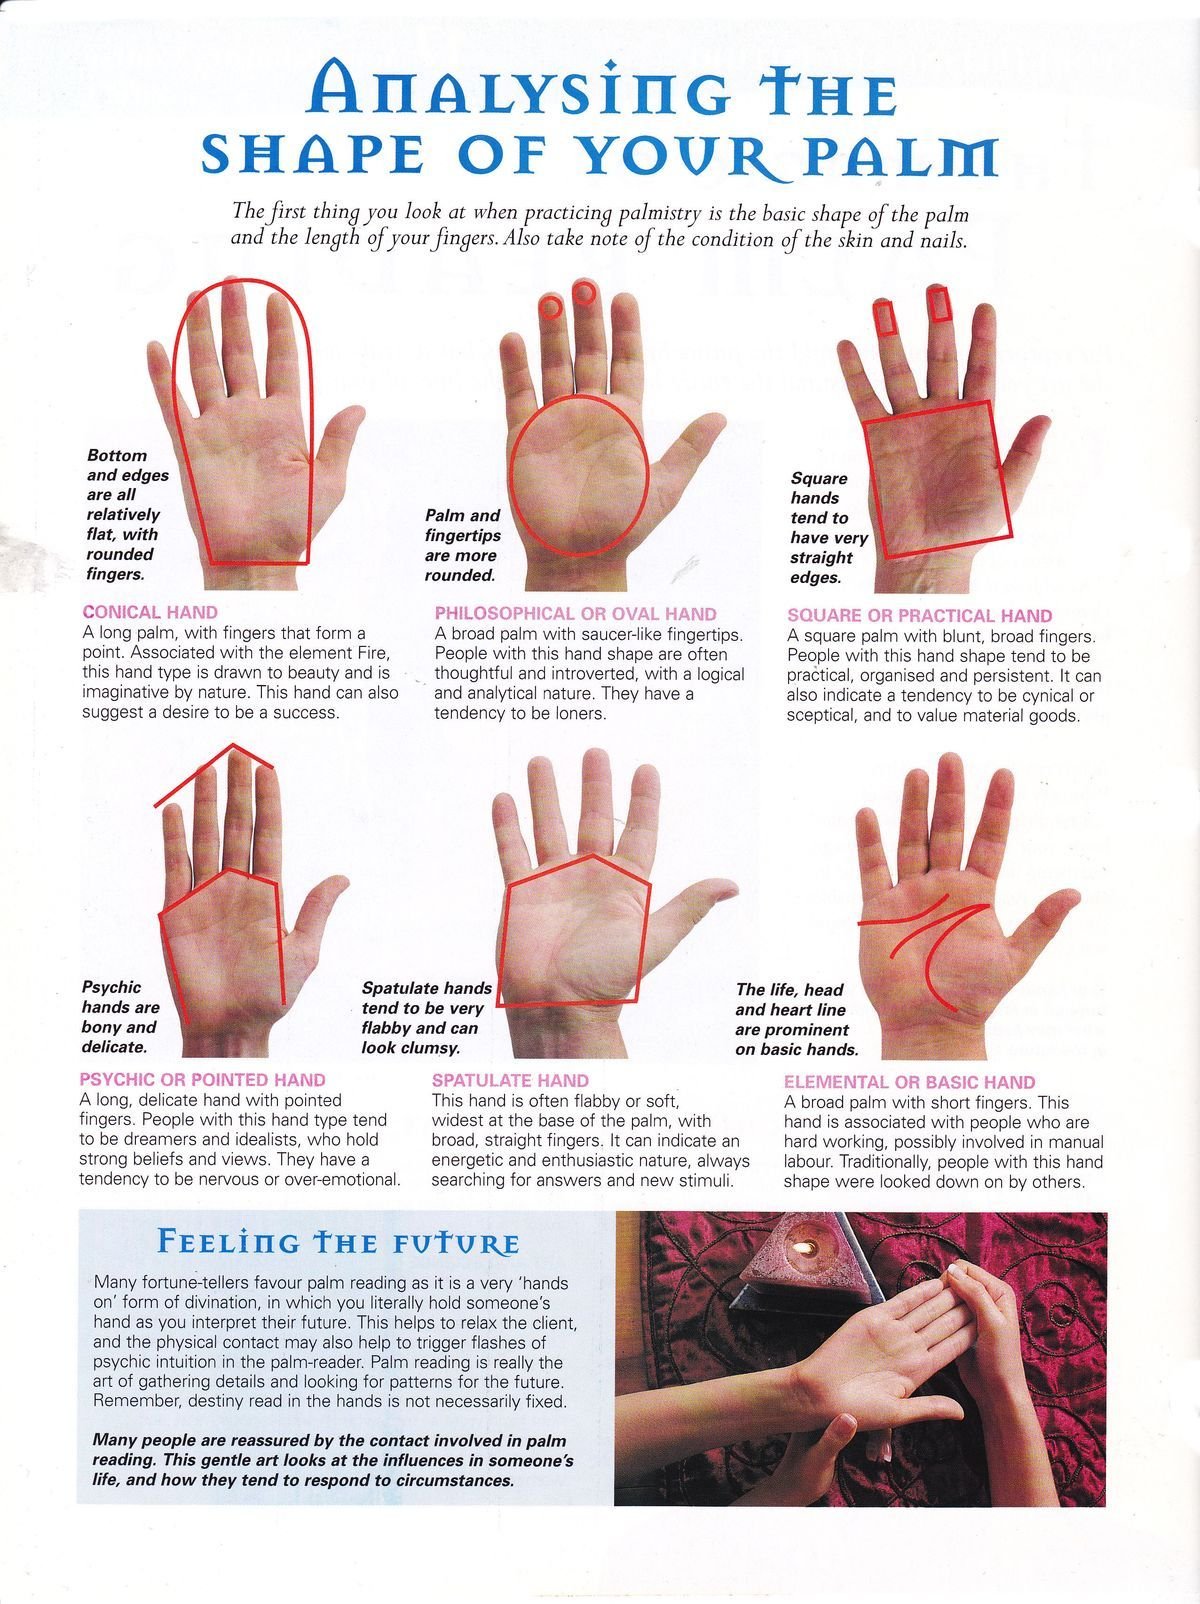 palmistry 101 a guide to palm reading for enchanted babes! palmpalmistry 101 a guide to palm reading for enchanted babes!